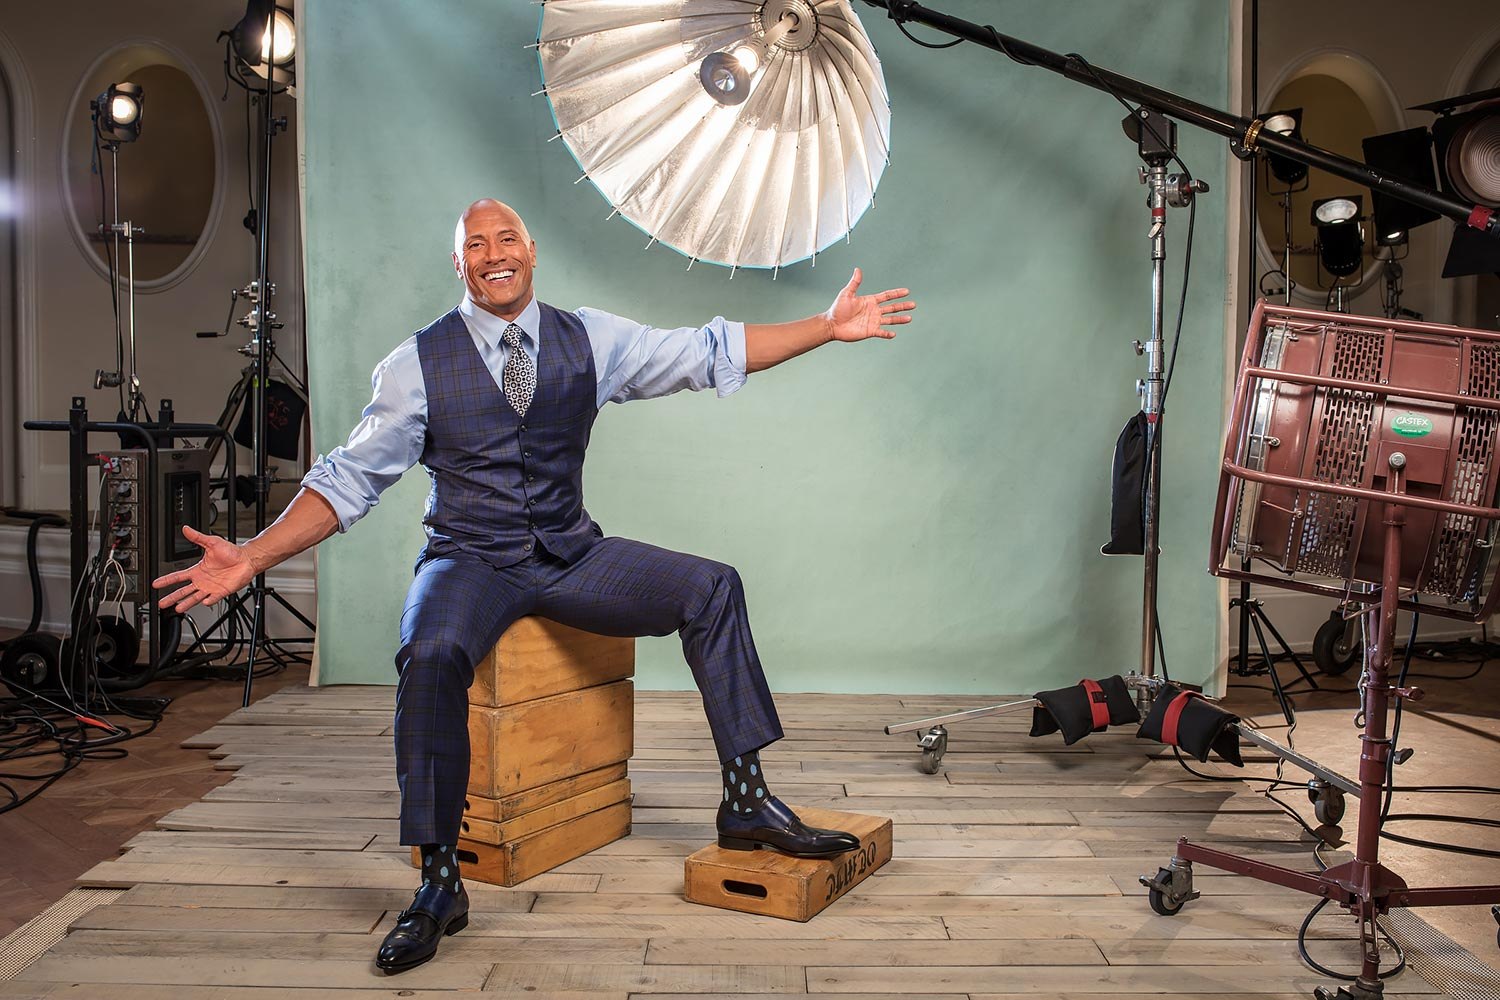 Portrait of actor Dwayne Johnson Beverly Hills Hotel/Beverly Hills, CA, USA 11/14/2016 SI-619 TK1 Credit: Michael J. LeBrecht II